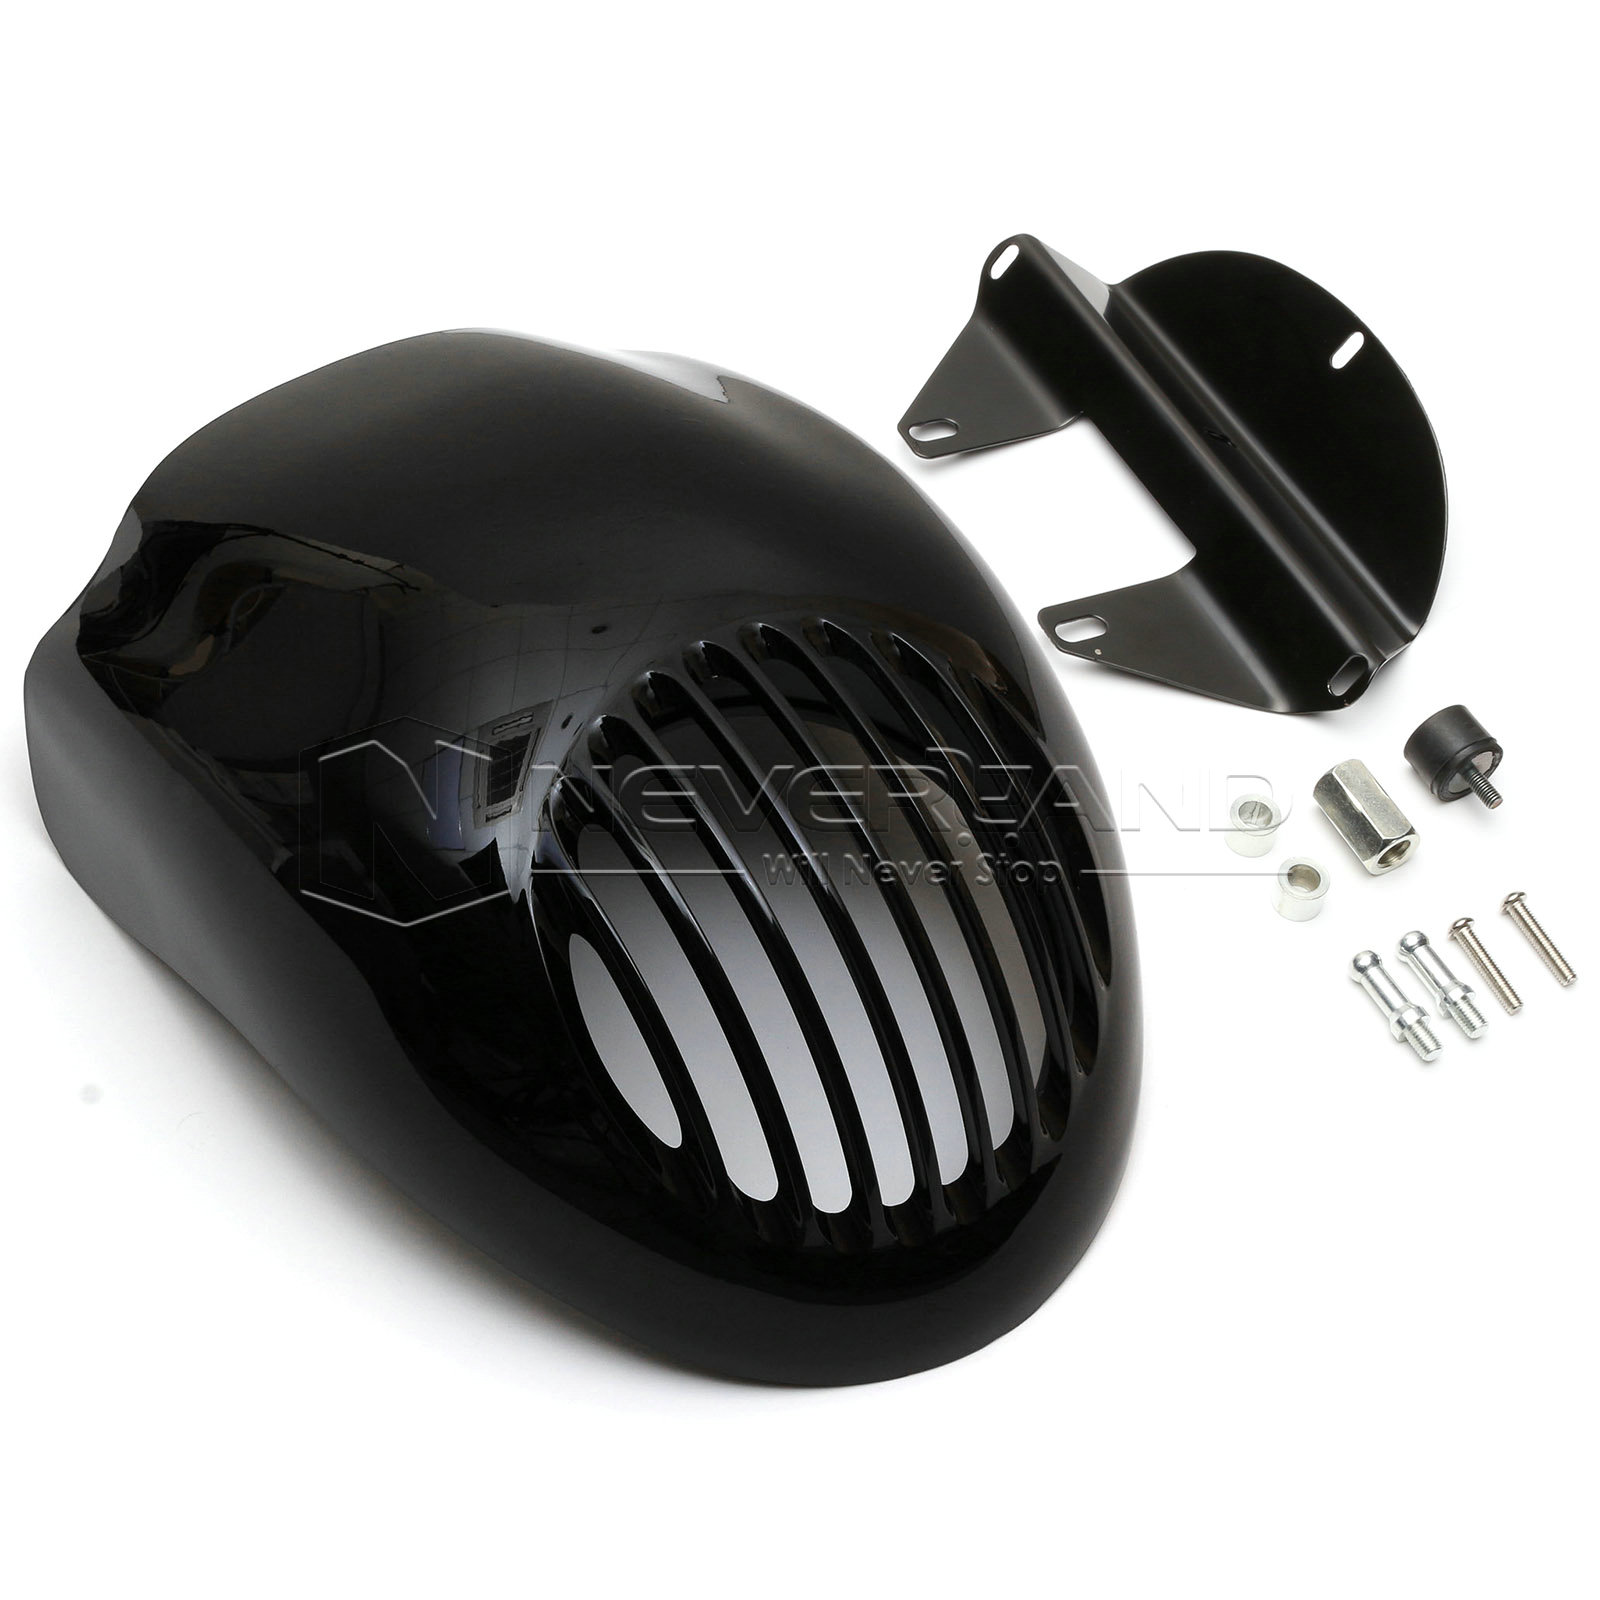 Gloss Black Front Cowl Fork Mount Headlight Fairing Visor Grill Mask For Harley Sportster Dyna XL FX 883 Freeshipping D30 red 5 3 4 motor vehicle headlight fairing bezel mask front visor cowl cover for harley cafe racer sportster dyna xl 883 3757